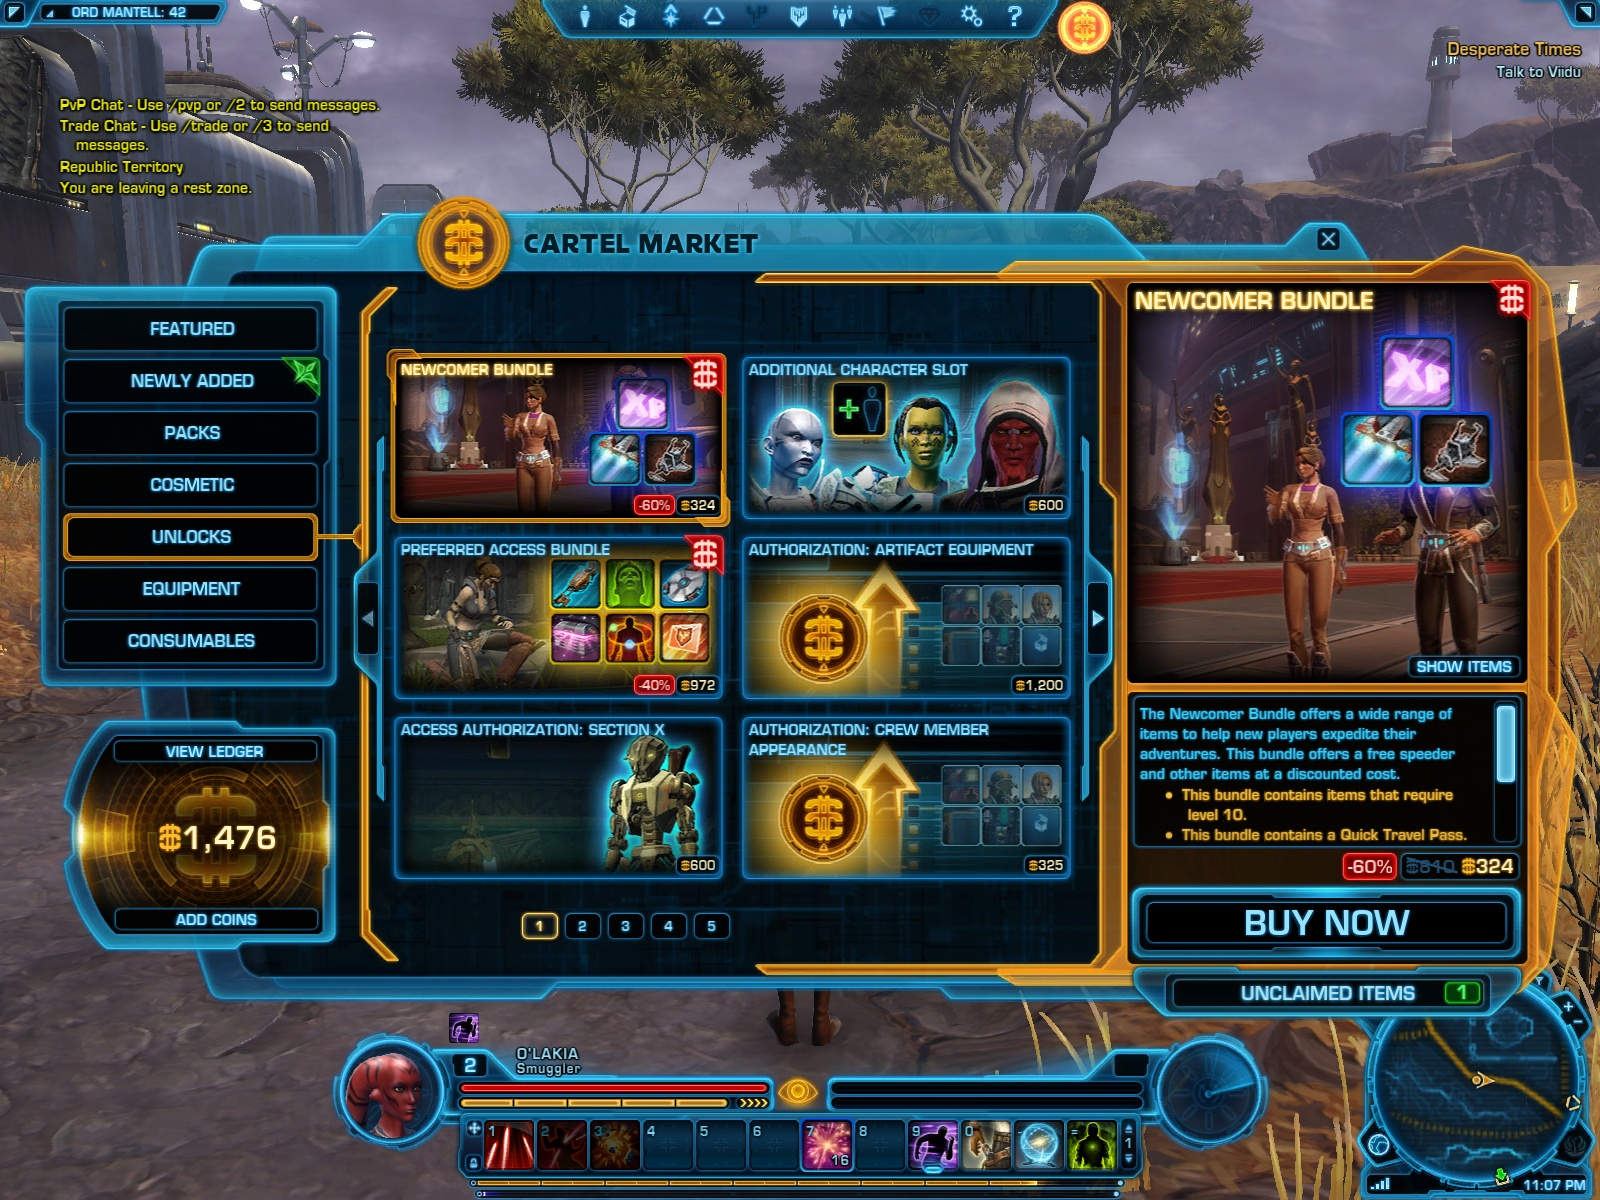 The main page of the Cartel Market